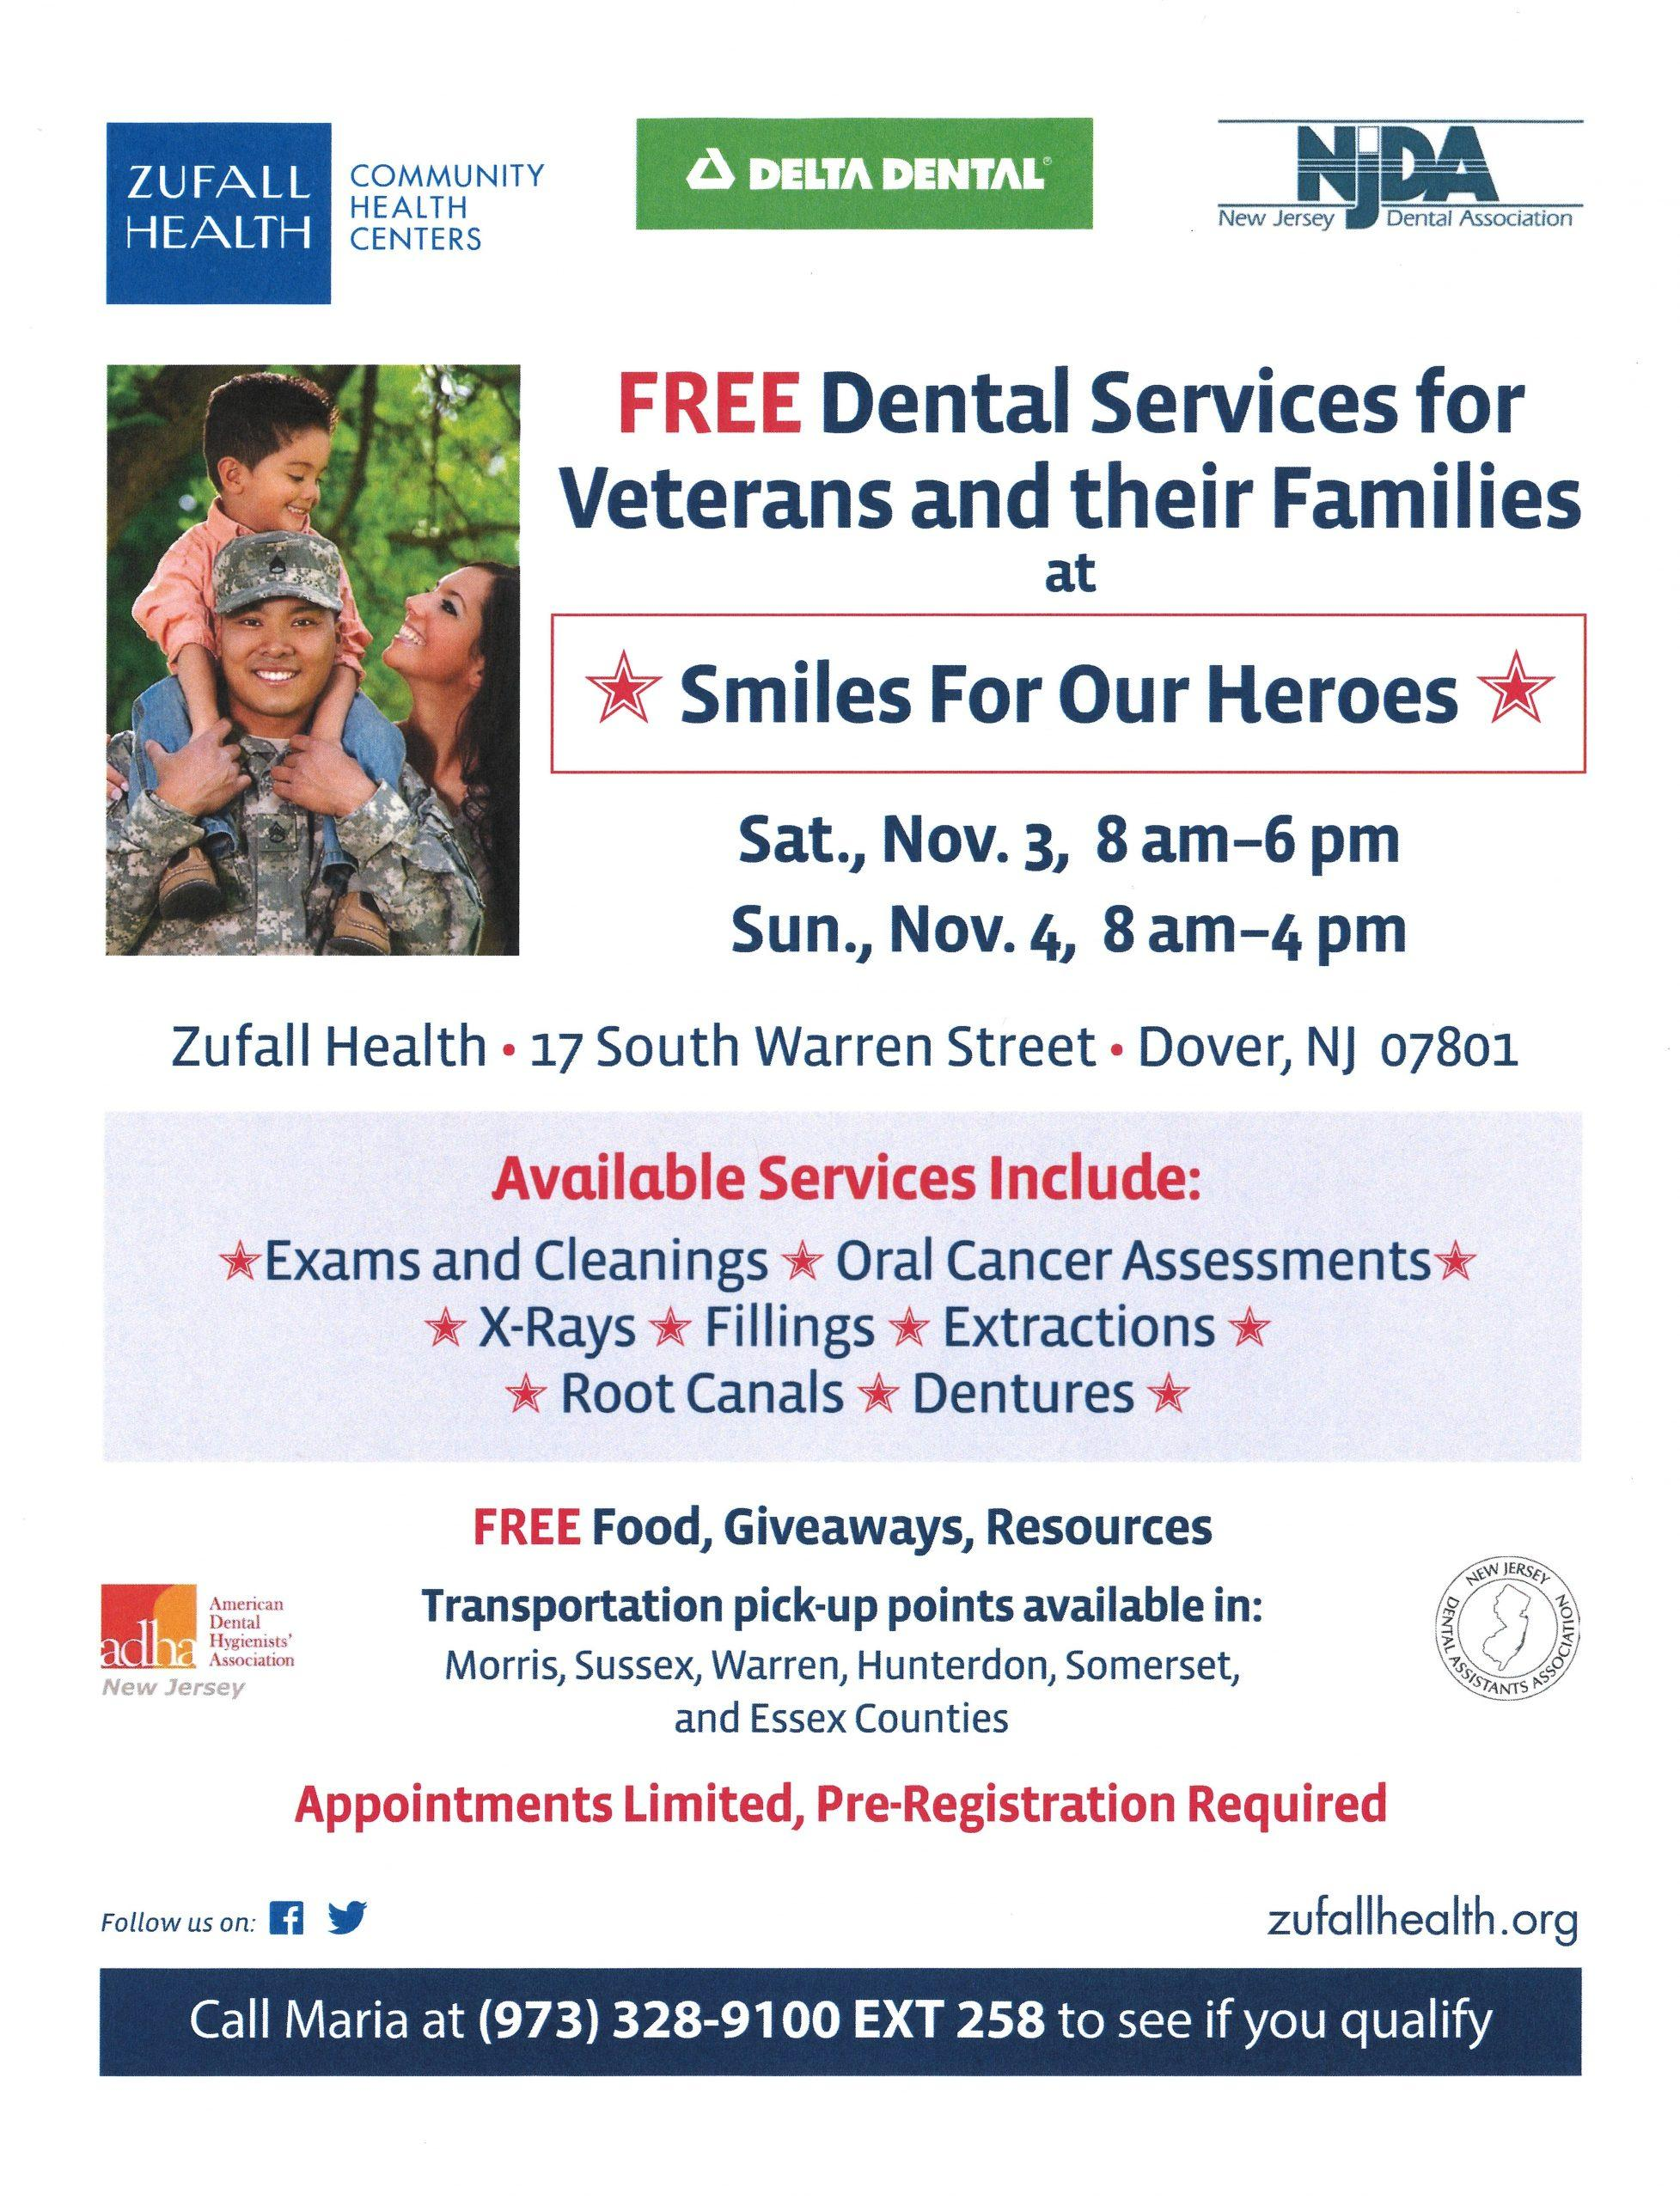 Smiles for our heroes veterans dental event flyer